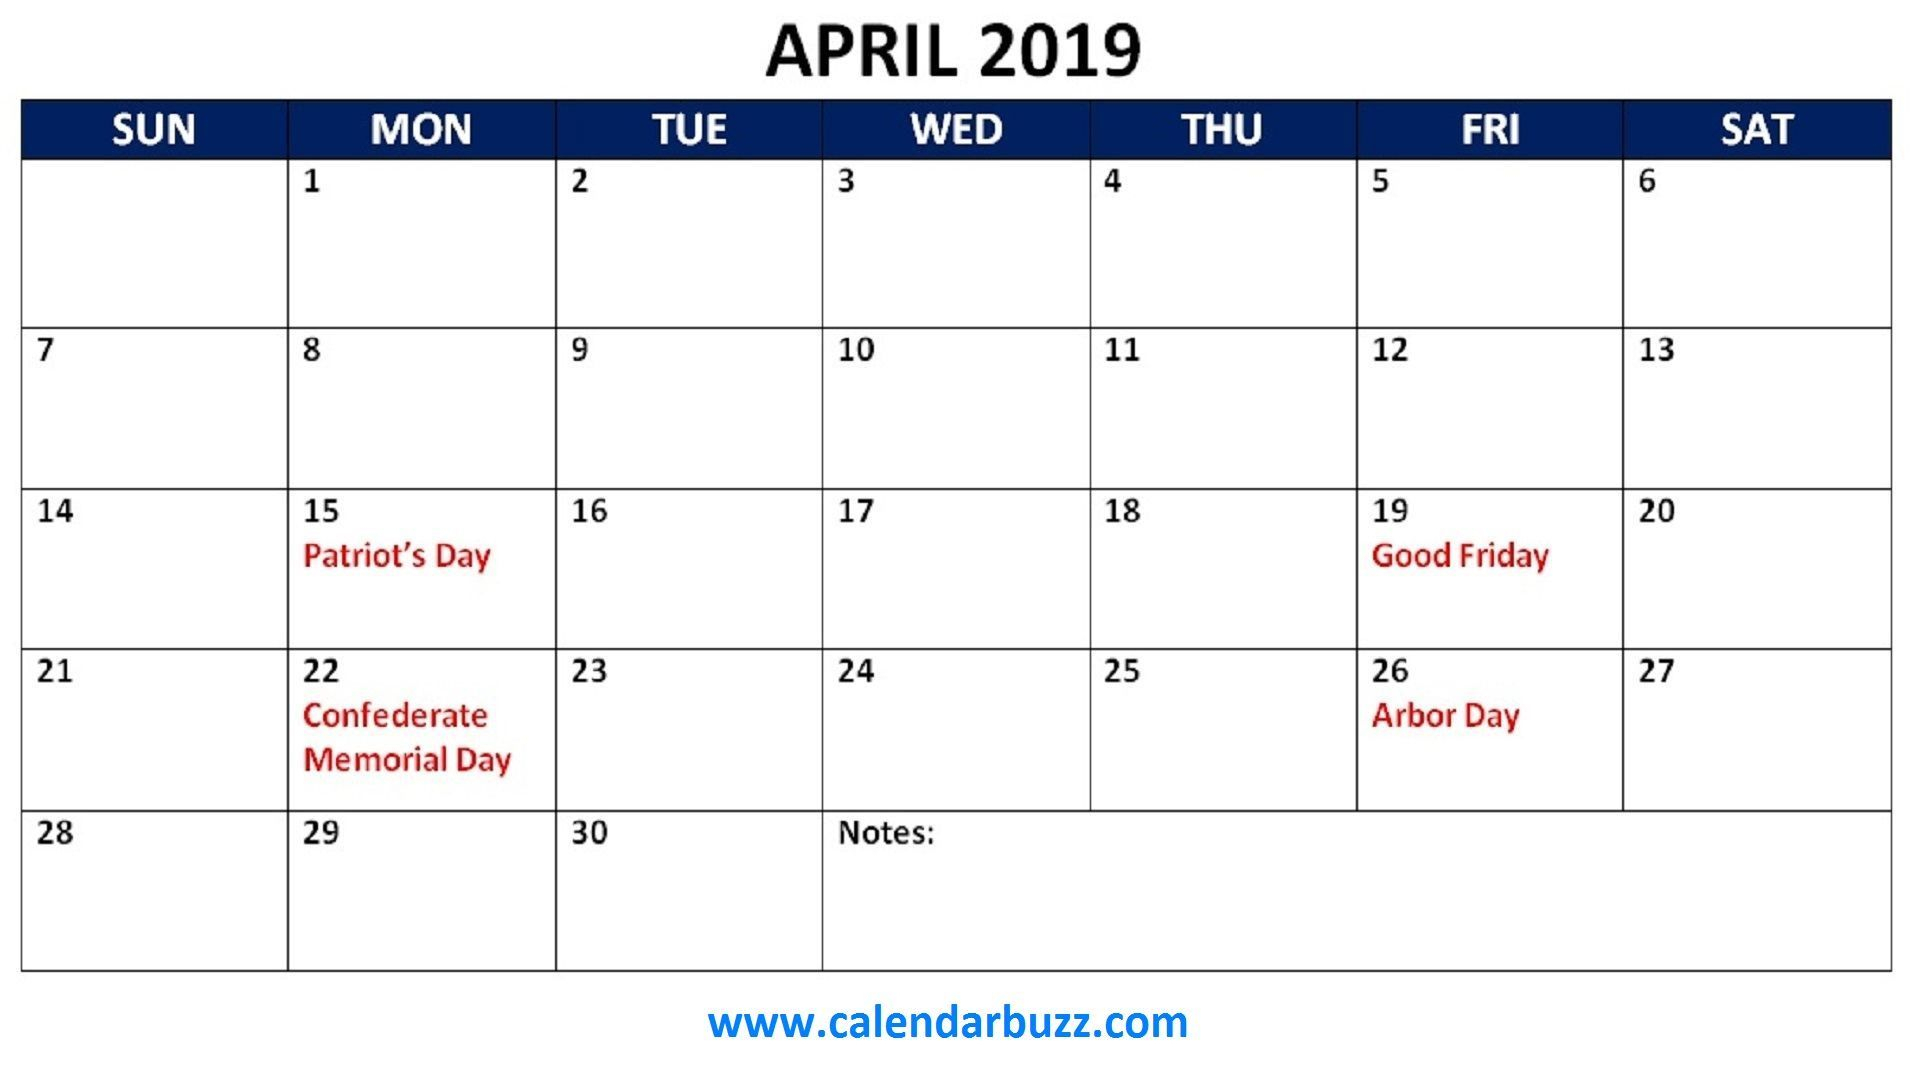 April 2019 Calendar With Holidays - Free Printable Calendar, Blank throughout 12 Month Calendar Template Clip Art Blank